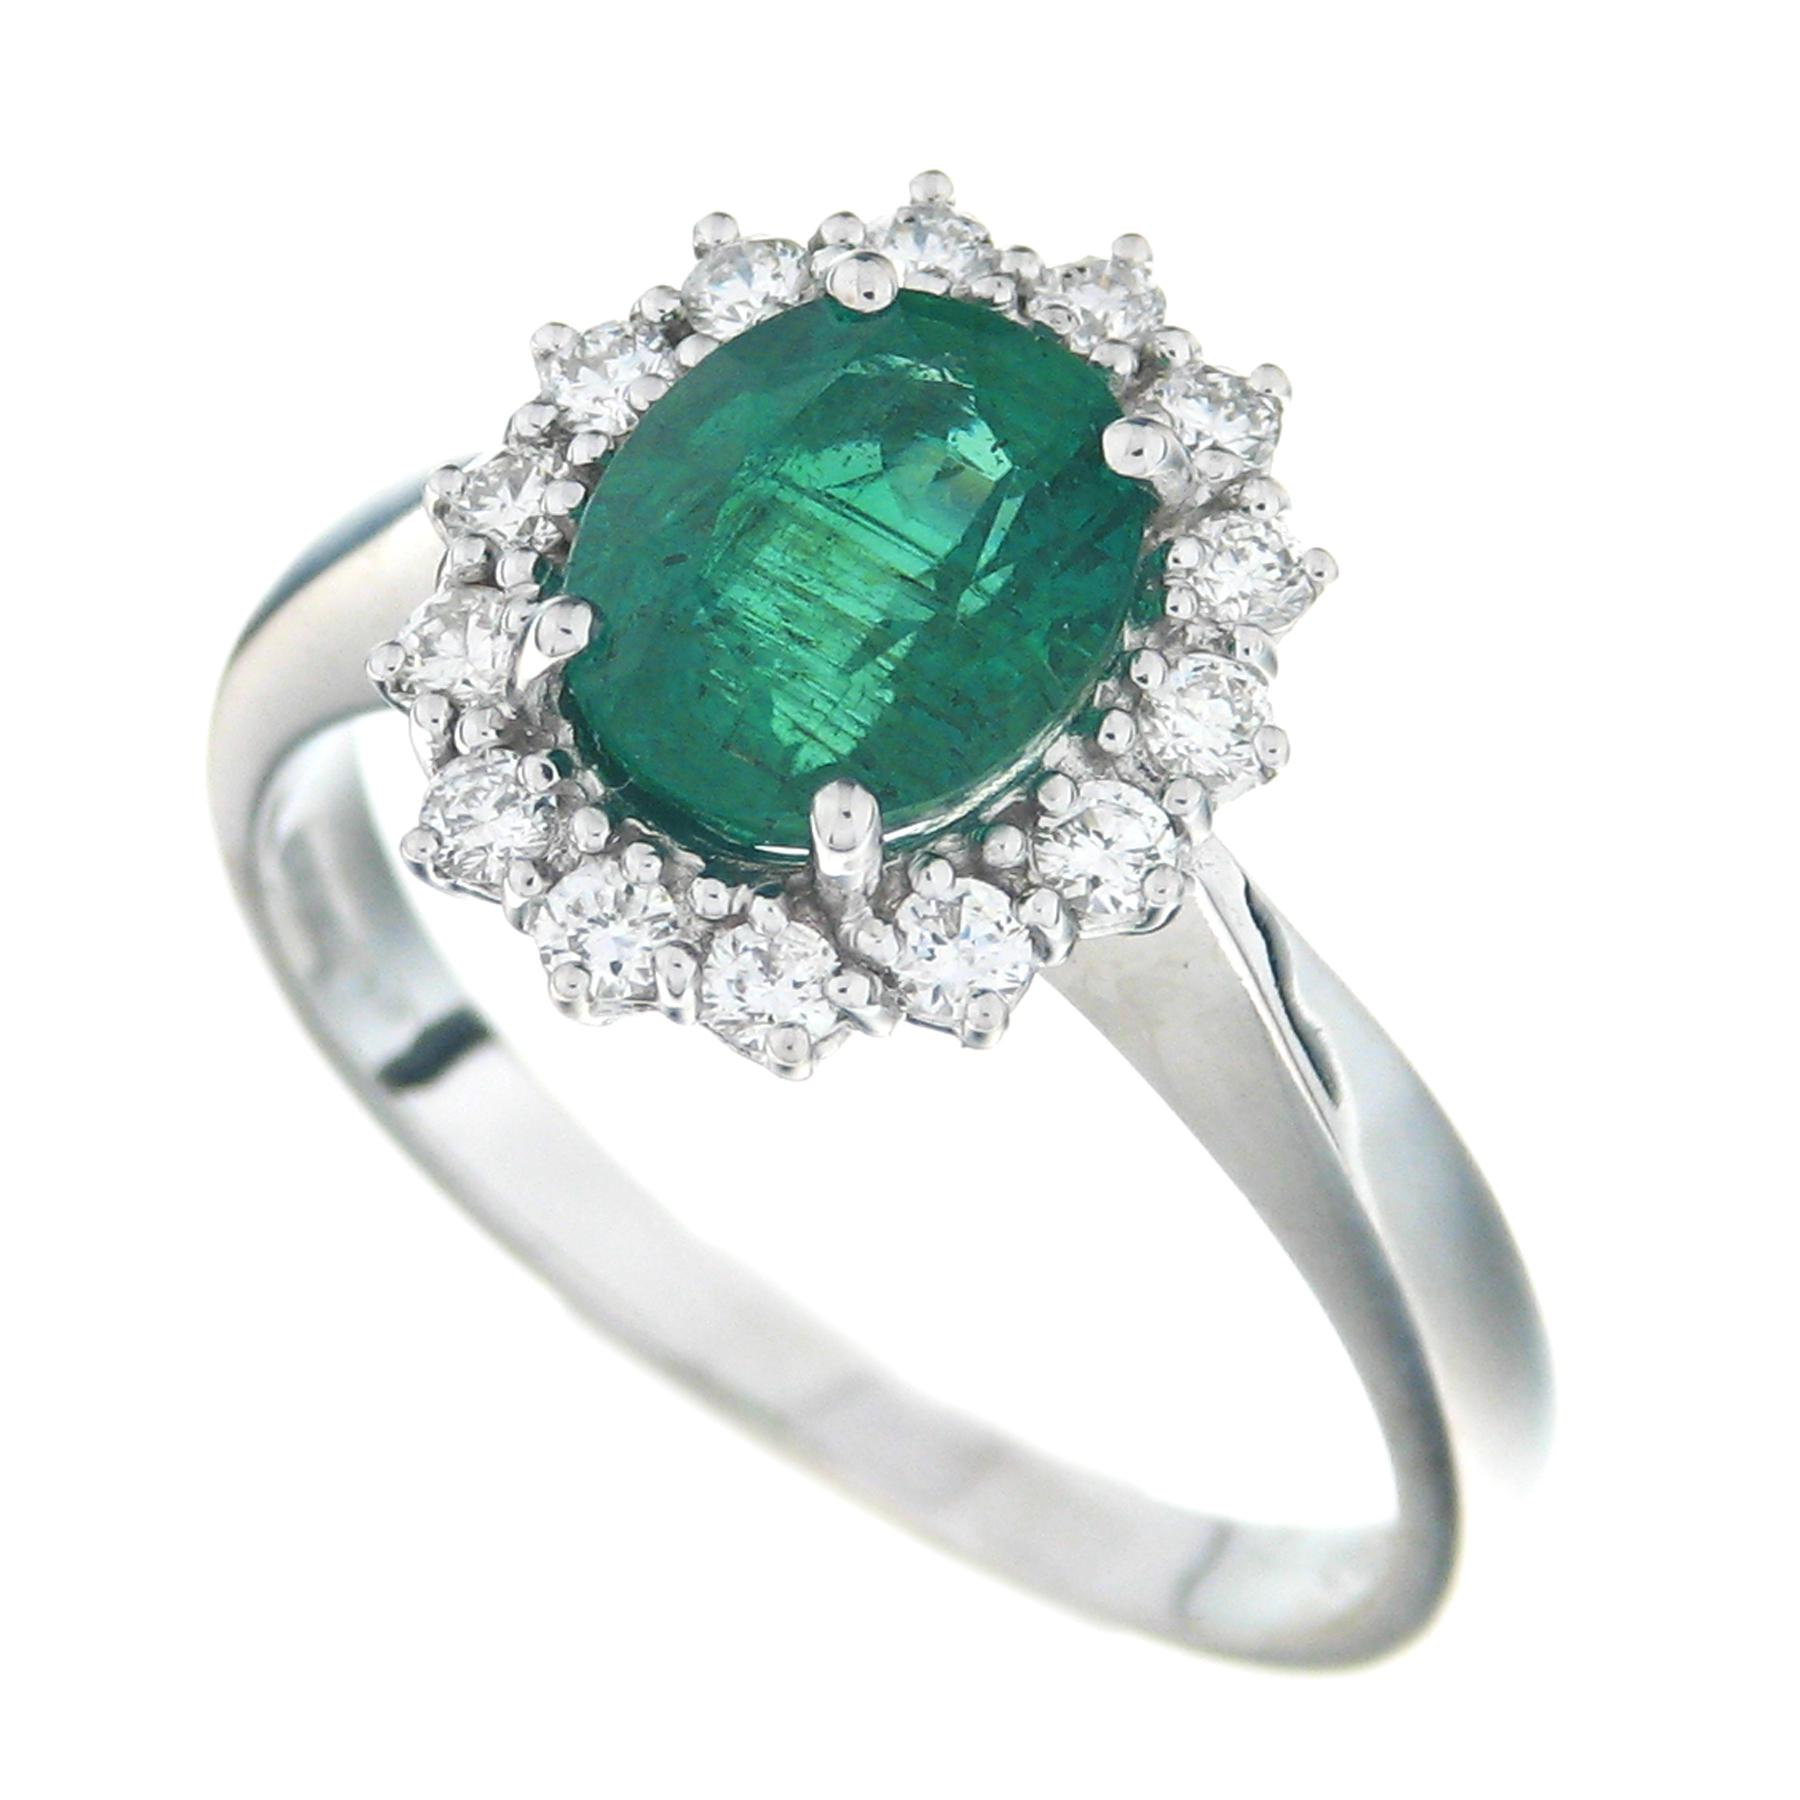 Gival 18ct White Gold Diamond & Emerald Ring 3935